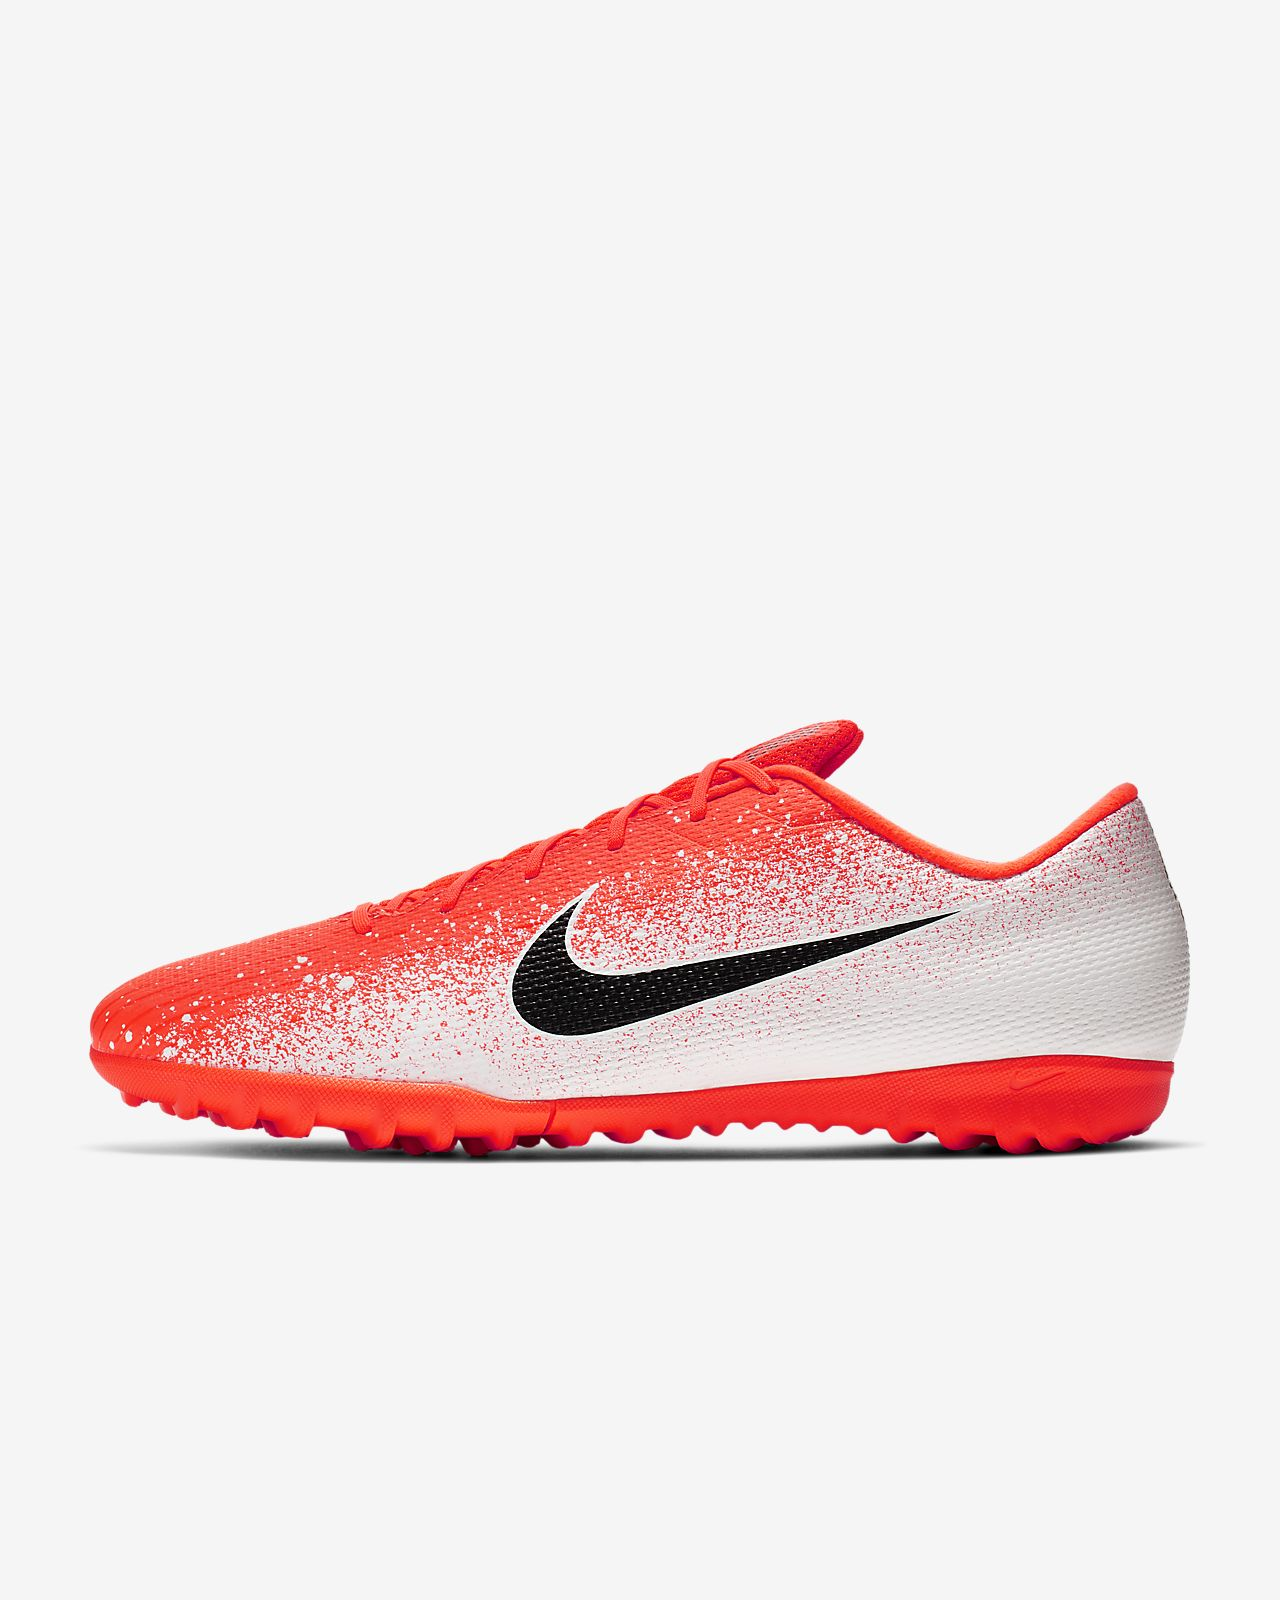 0b5054439 Nike VaporX 12 Academy TF Artificial-Turf Football Boot. Nike.com AU